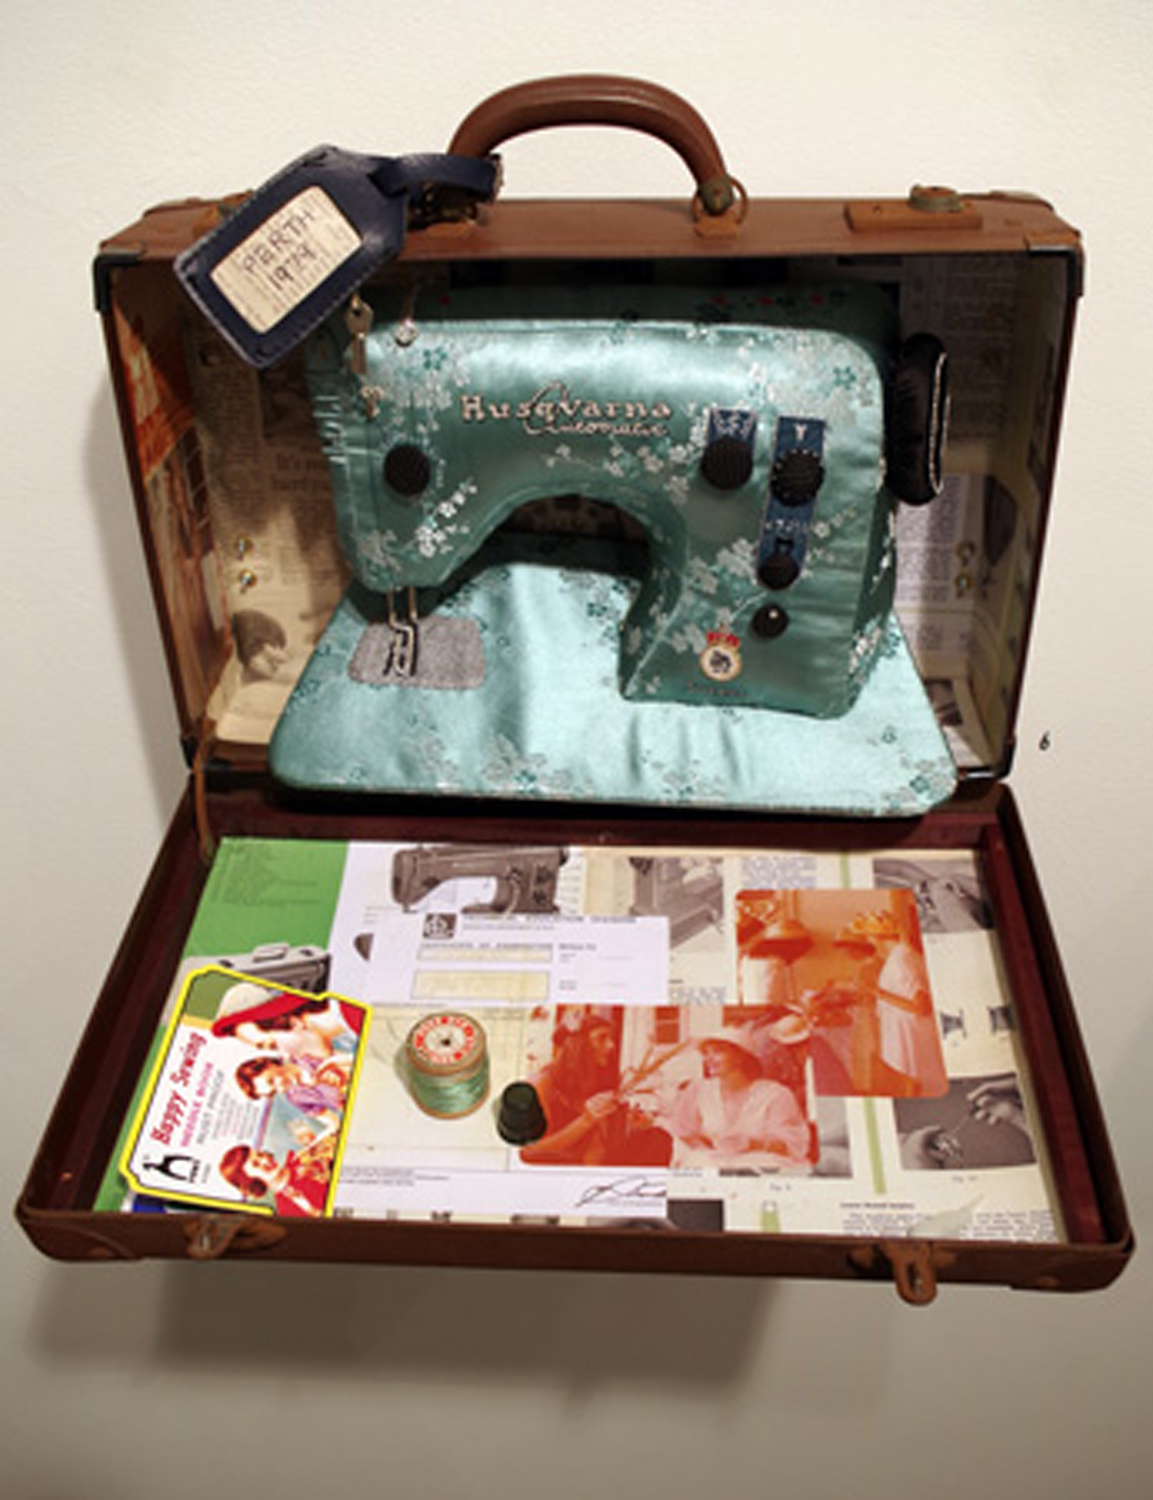 6. 'Perth - 1979', Susie Vickery, embroidery, applique, found objects, $1,400